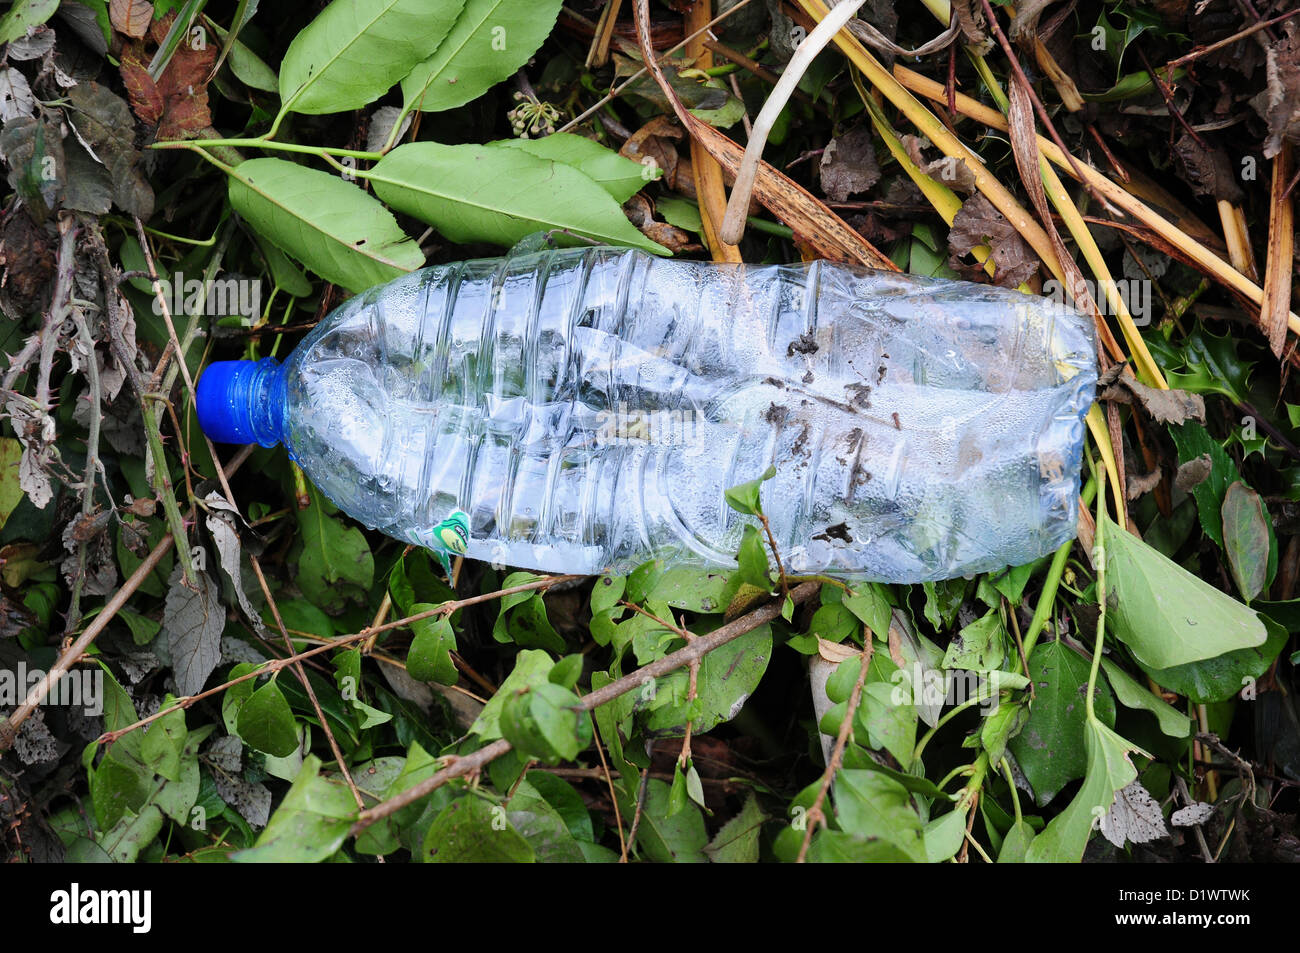 Plastic bottle lying in ditch bank. Pollution. - Stock Image